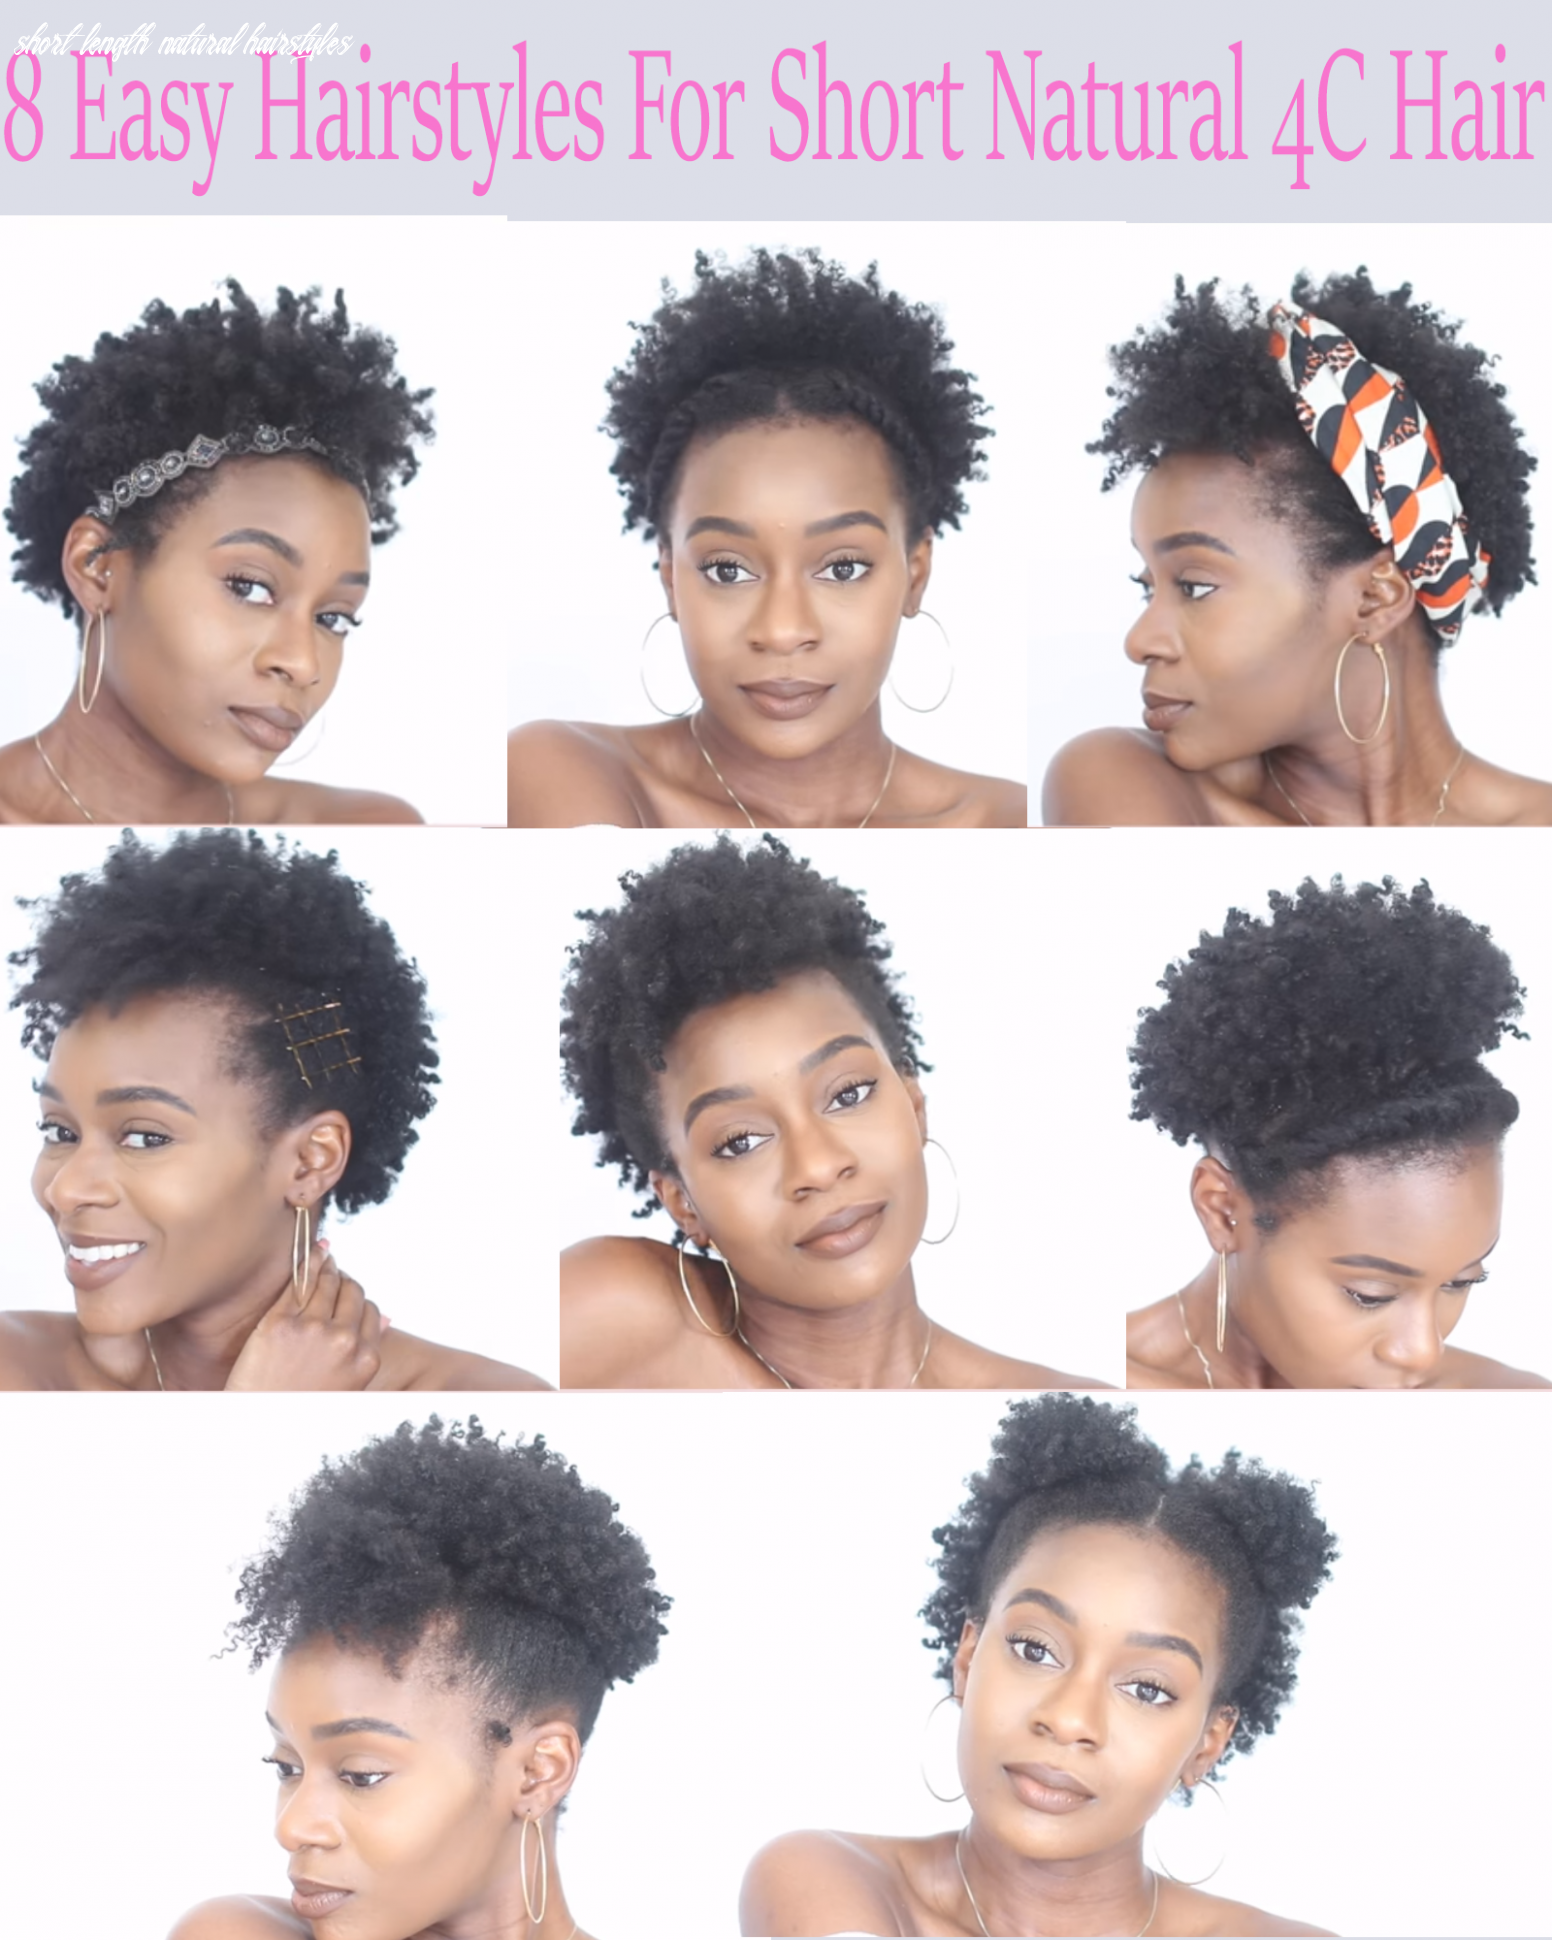 11 easy protective hairstyles for short natural 11c hair that will